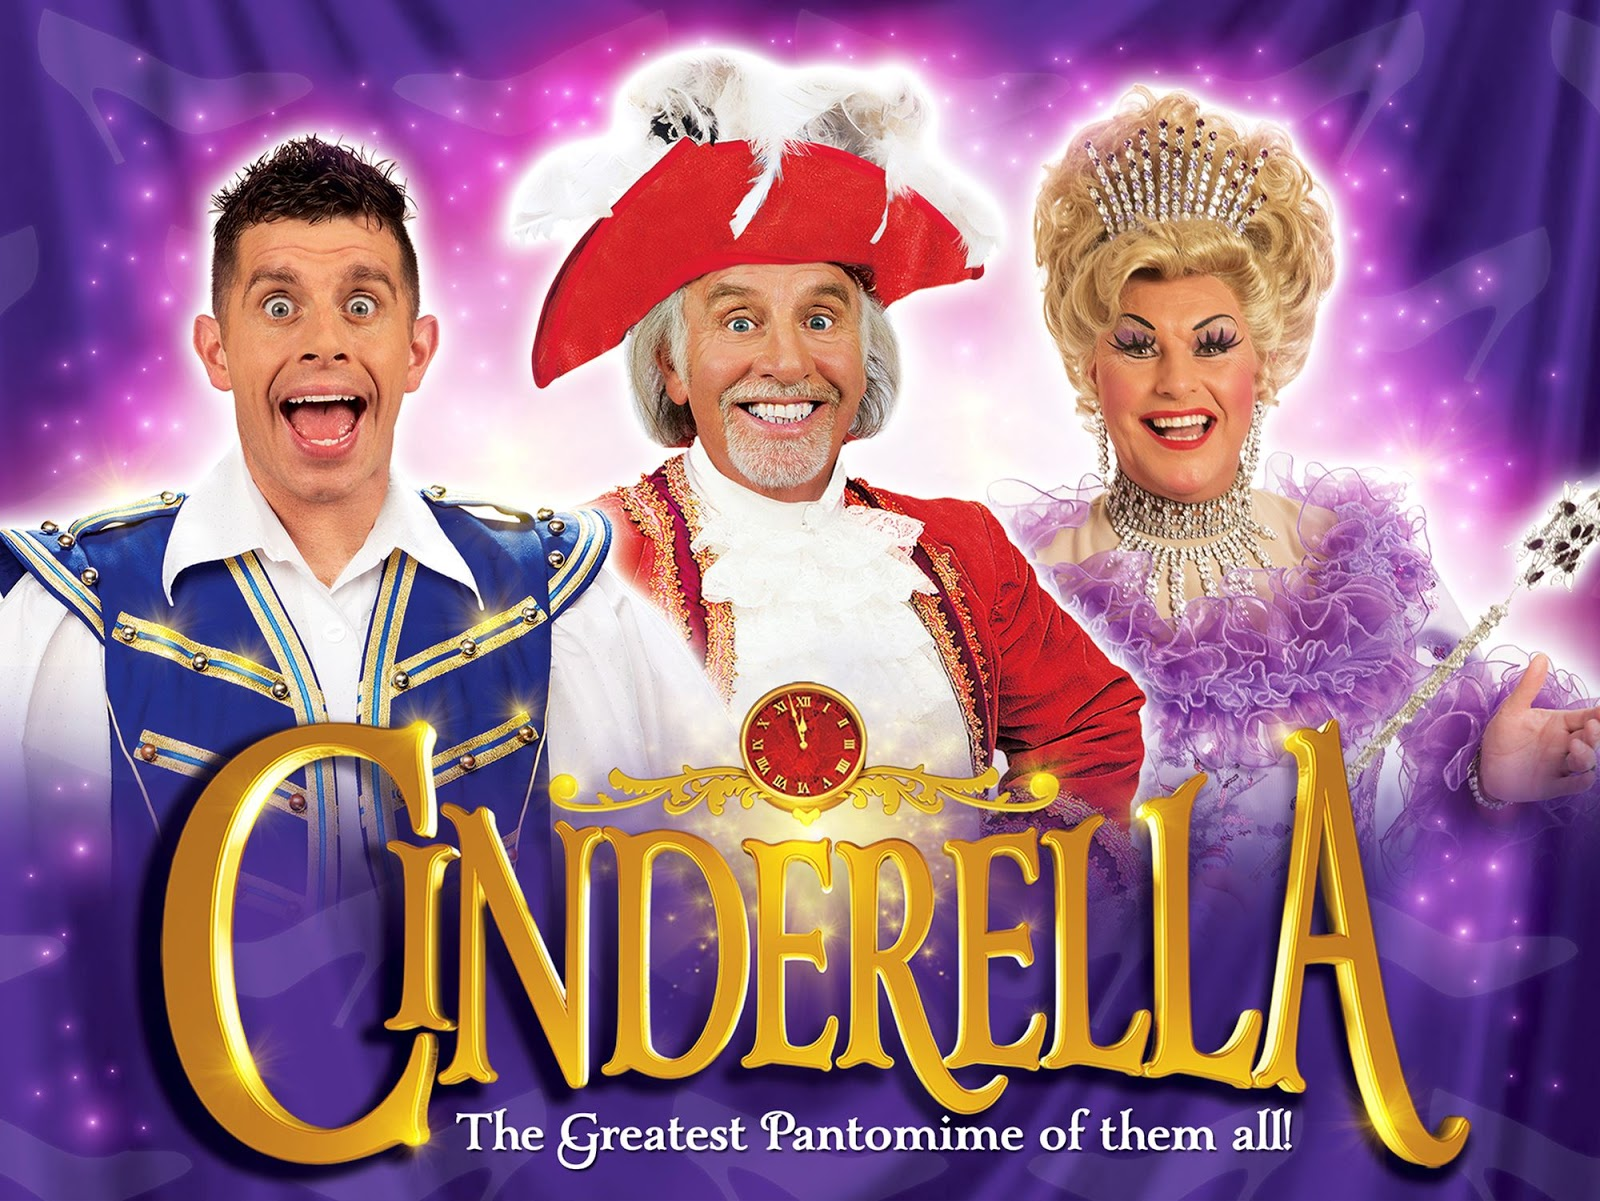 A guide to the best pantomimes in the North East 2016 - Cinderella at Theatre Royal Newcastle